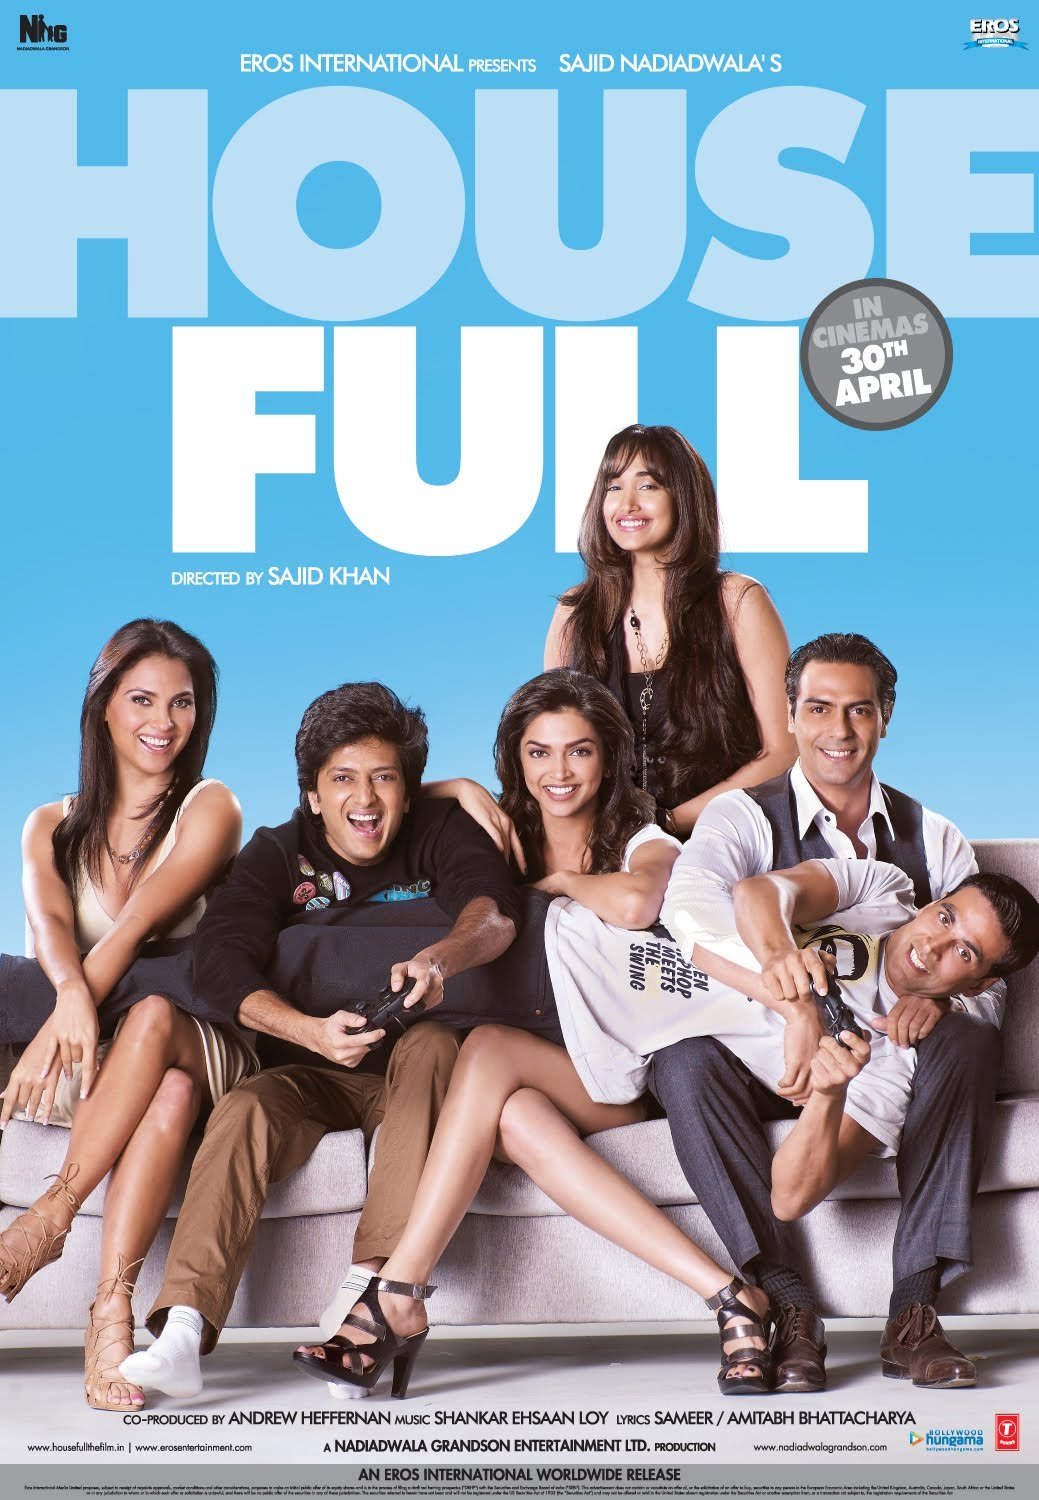 the loser full movie download in hindi dubbed